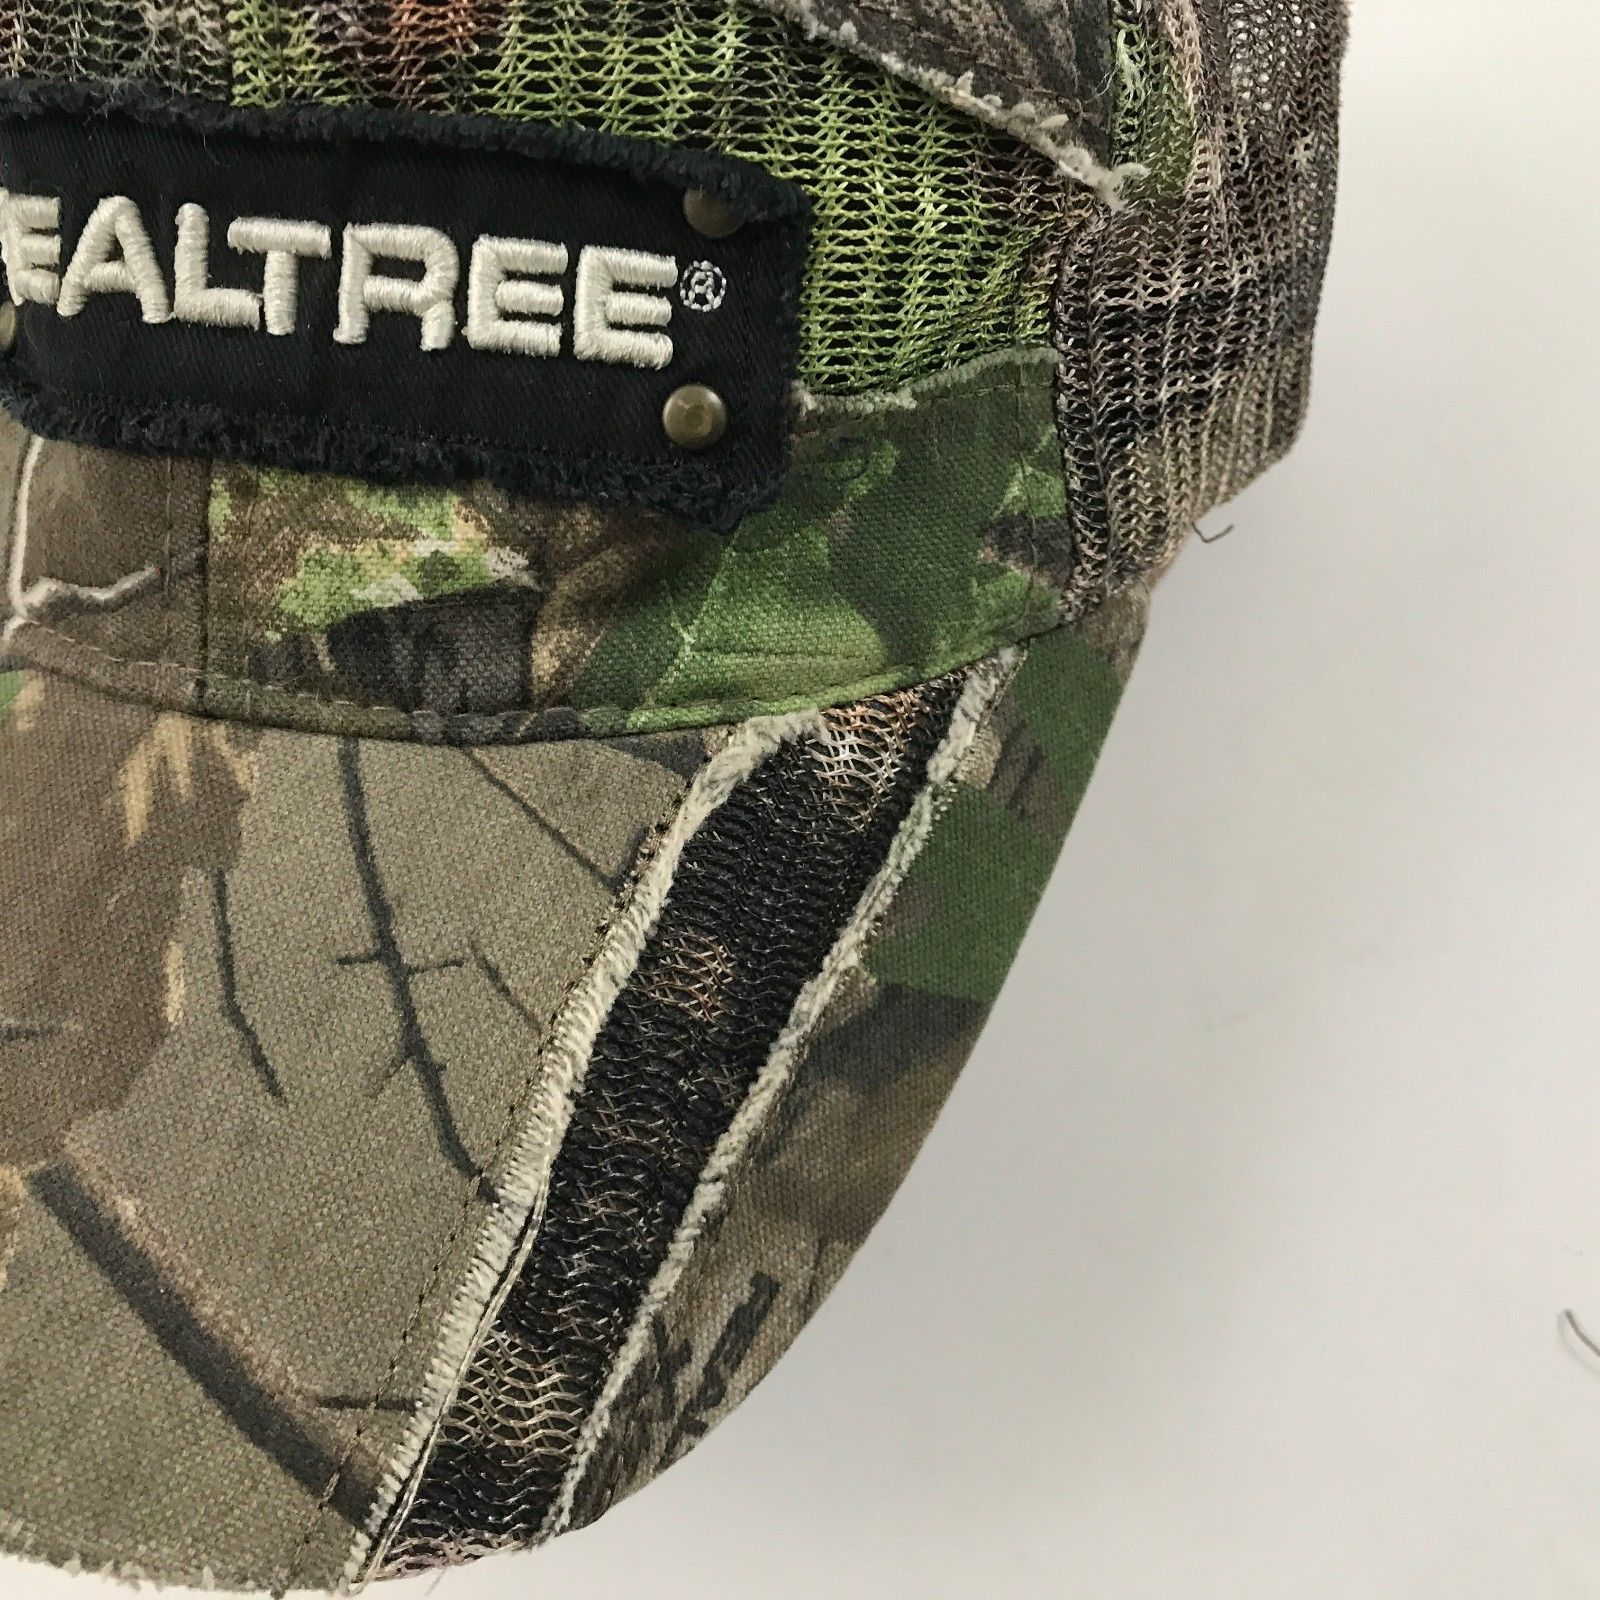 REALTREE Camouflage Strapback Trucker Hat Distressed Camo Baseball Cap Frayed